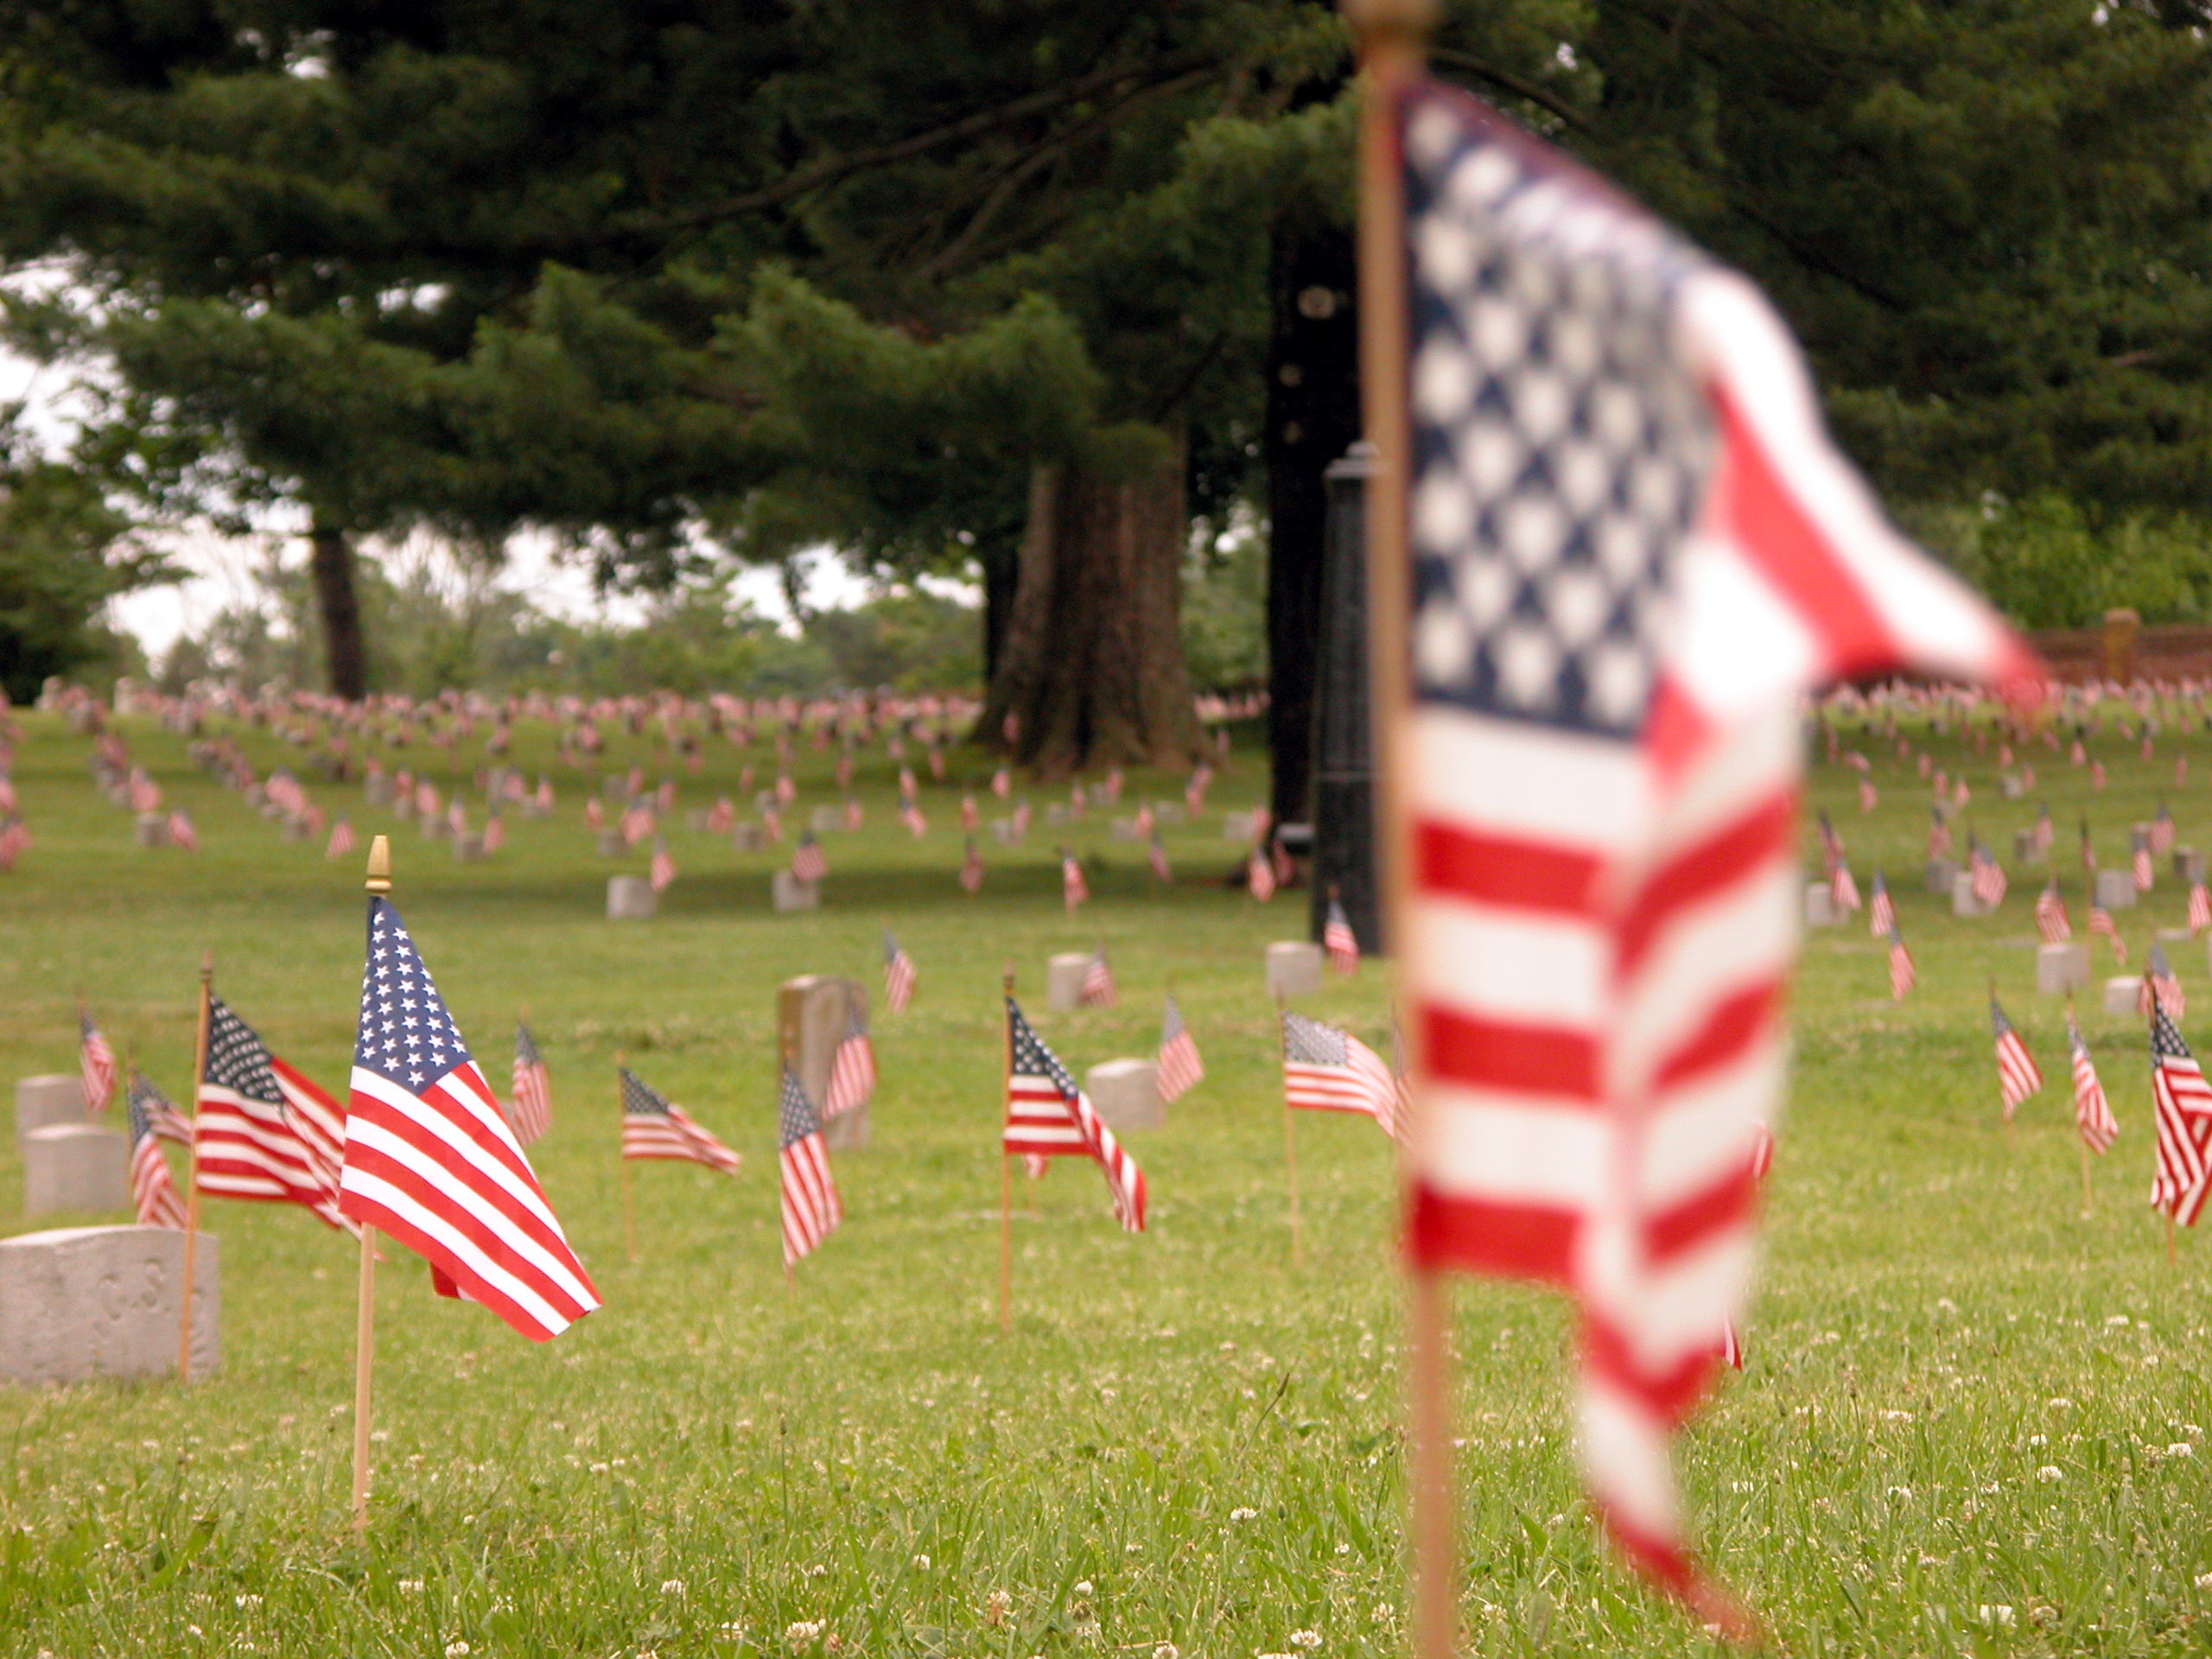 American flag waving in wind in foreground with soldier graves decorated by American flags in background